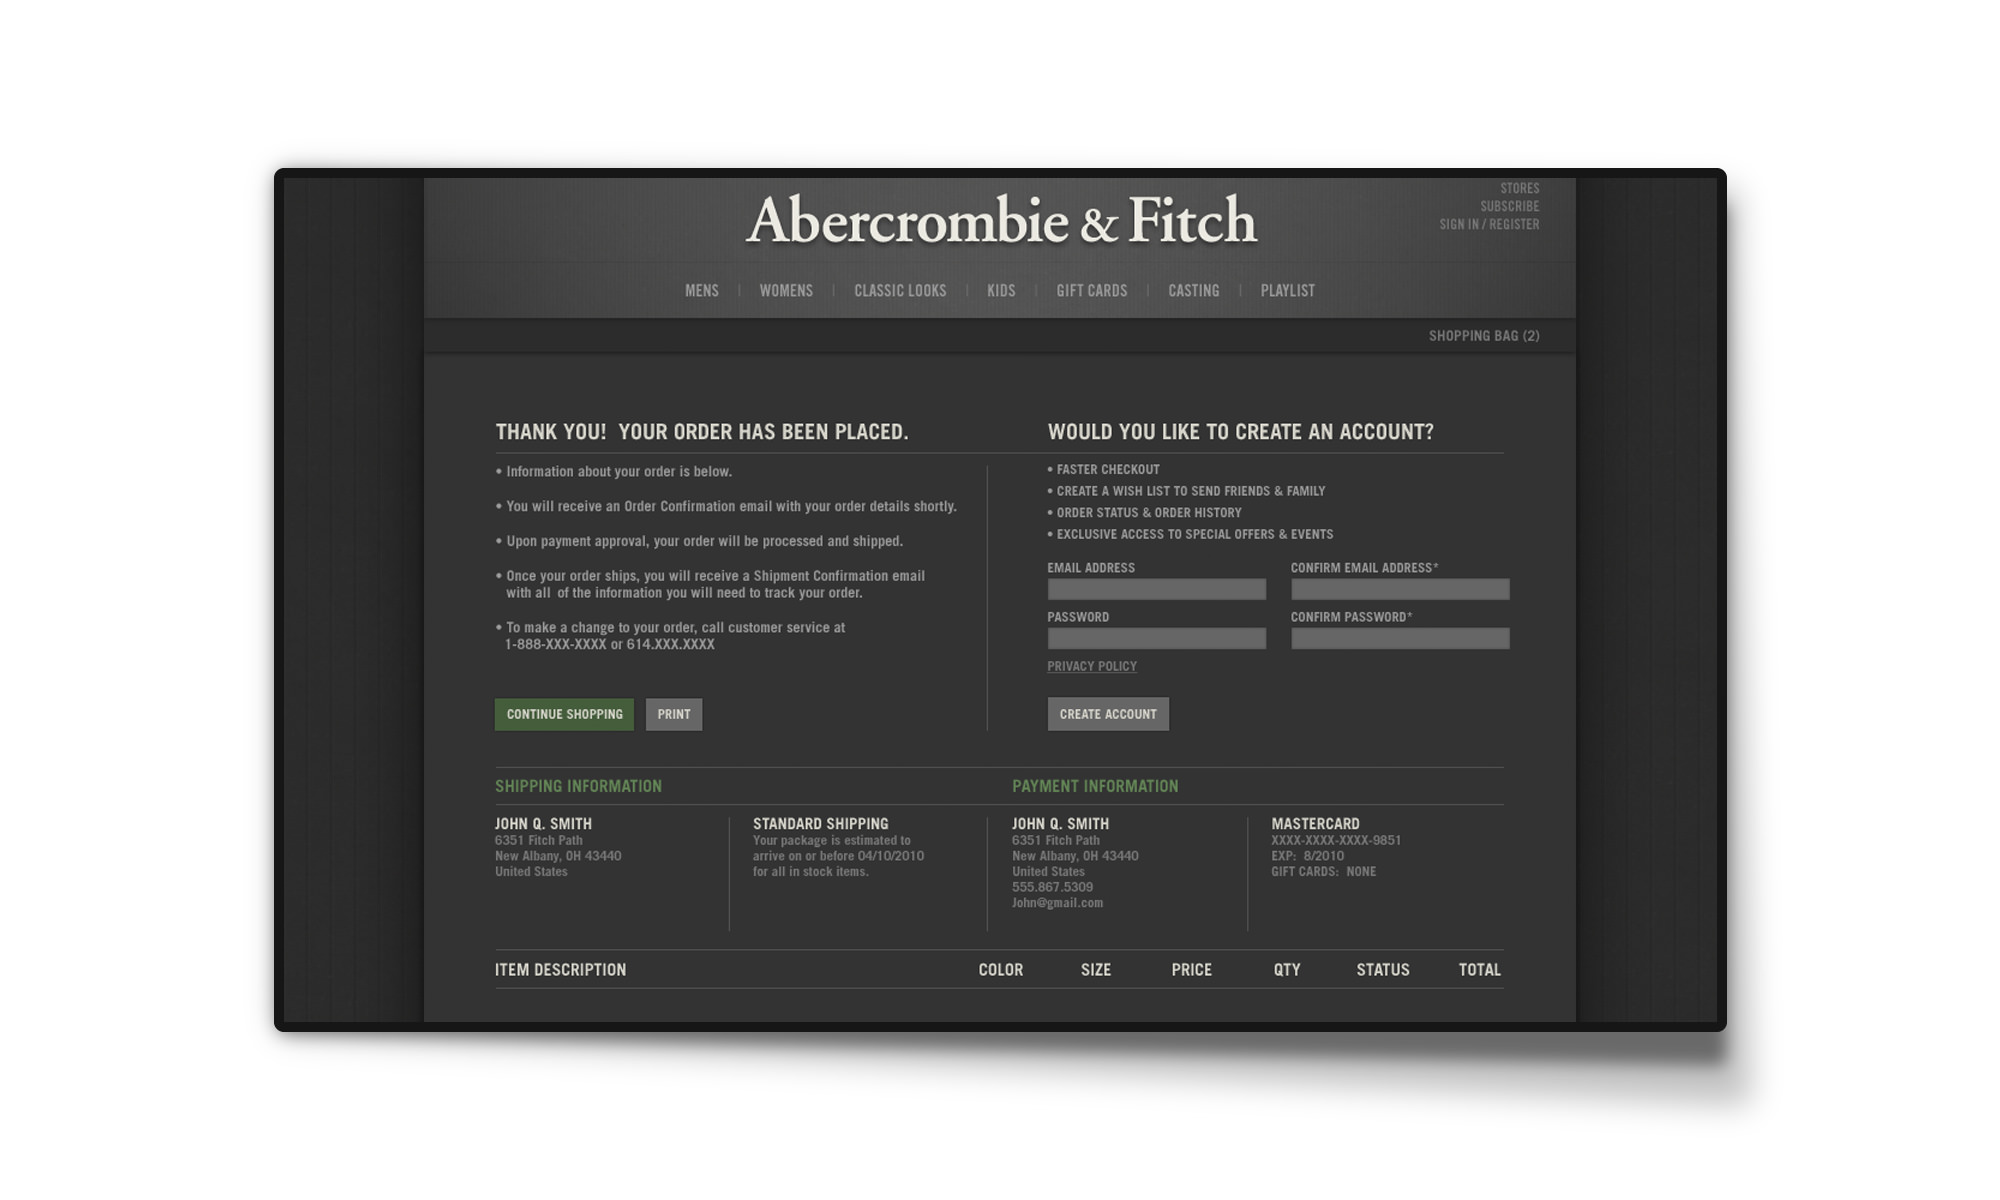 abercrombie-and-fitch-checkout.jpg